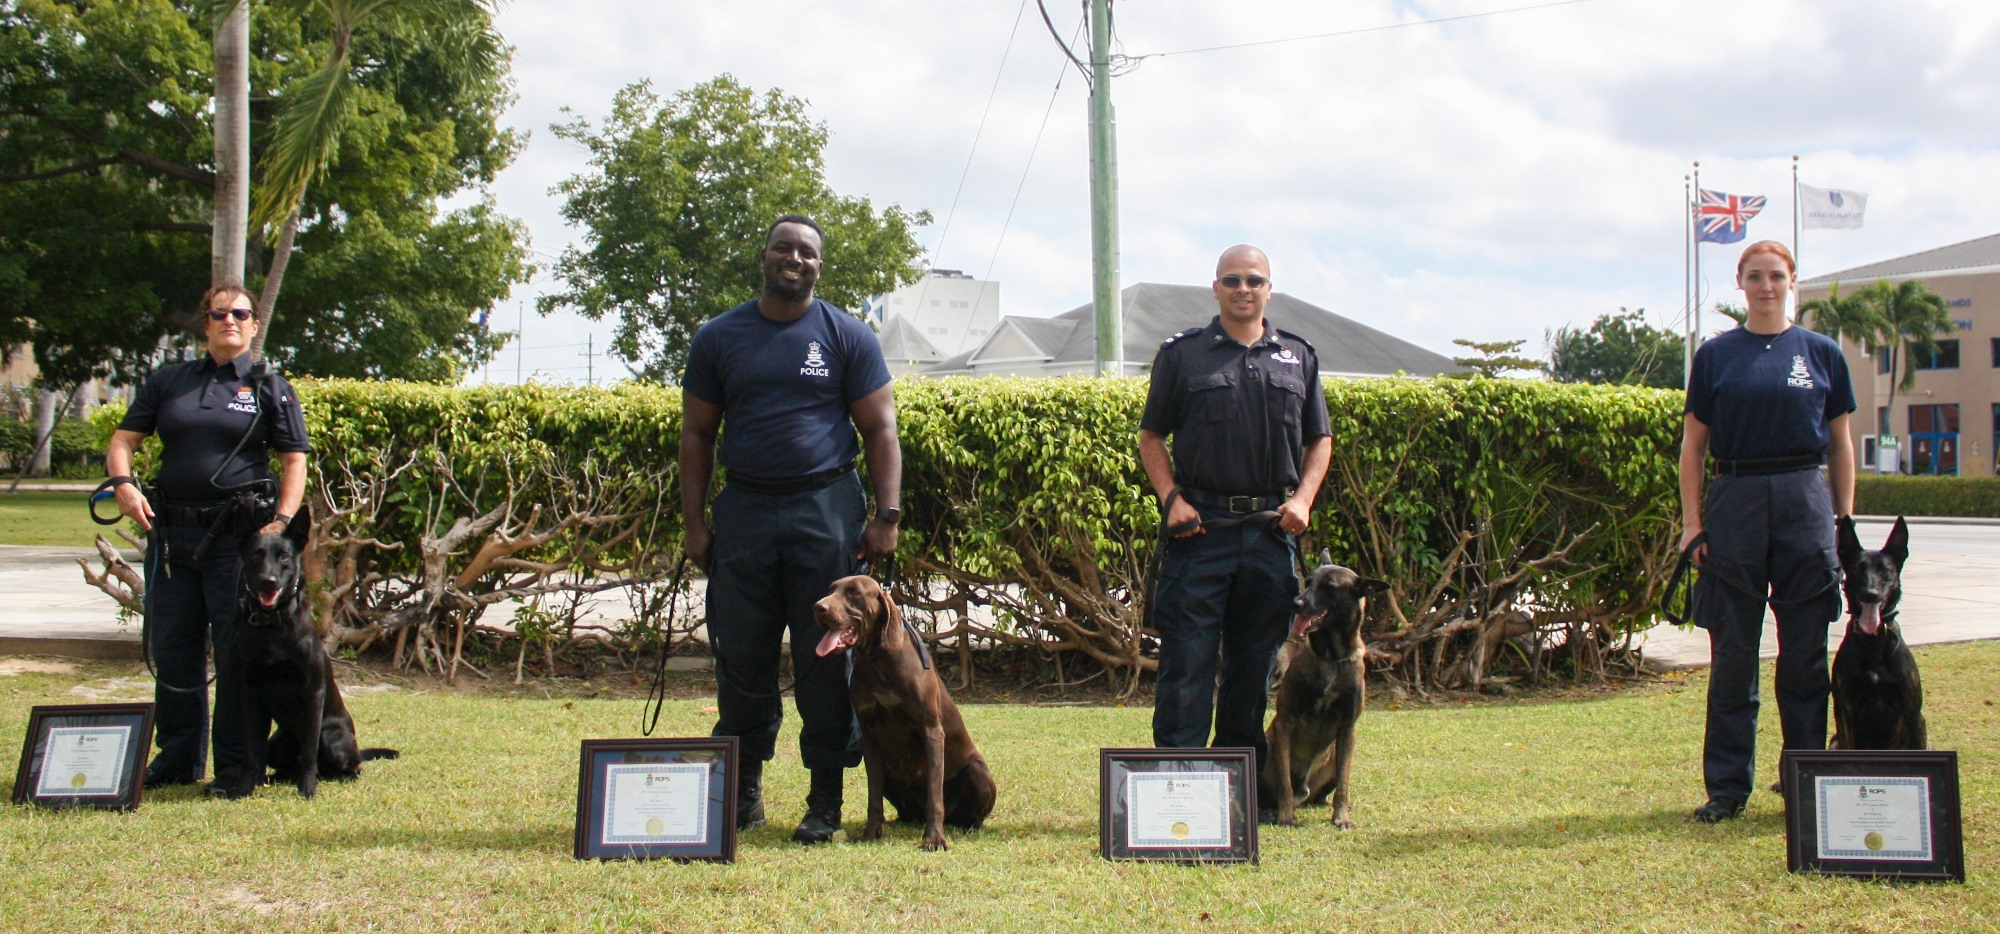 The K-9 officers pose with their dogs.